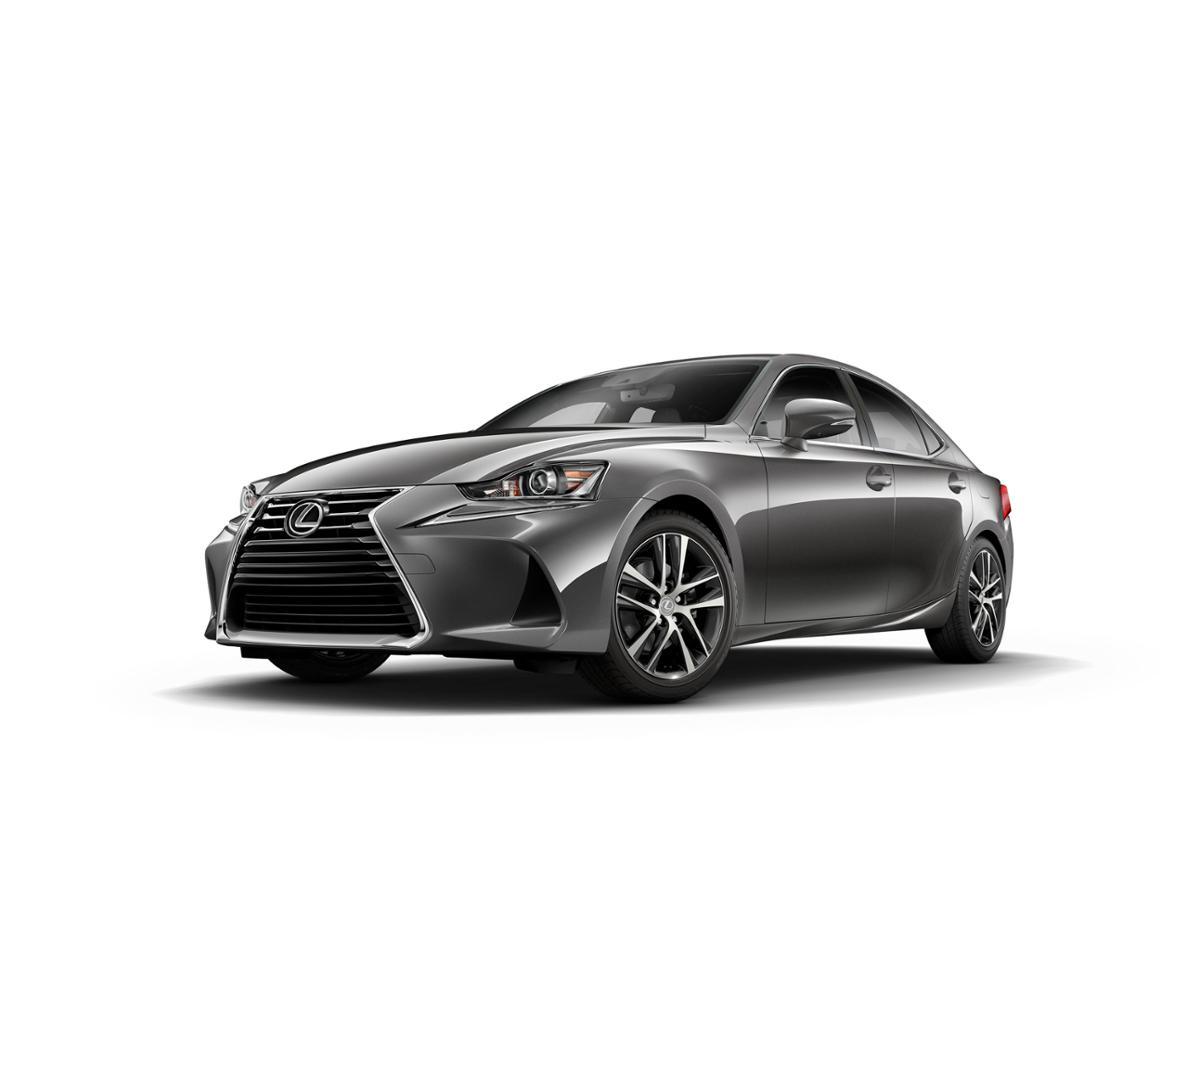 2018 Lexus IS 300 Vehicle Photo in Mission Viejo, CA 92692